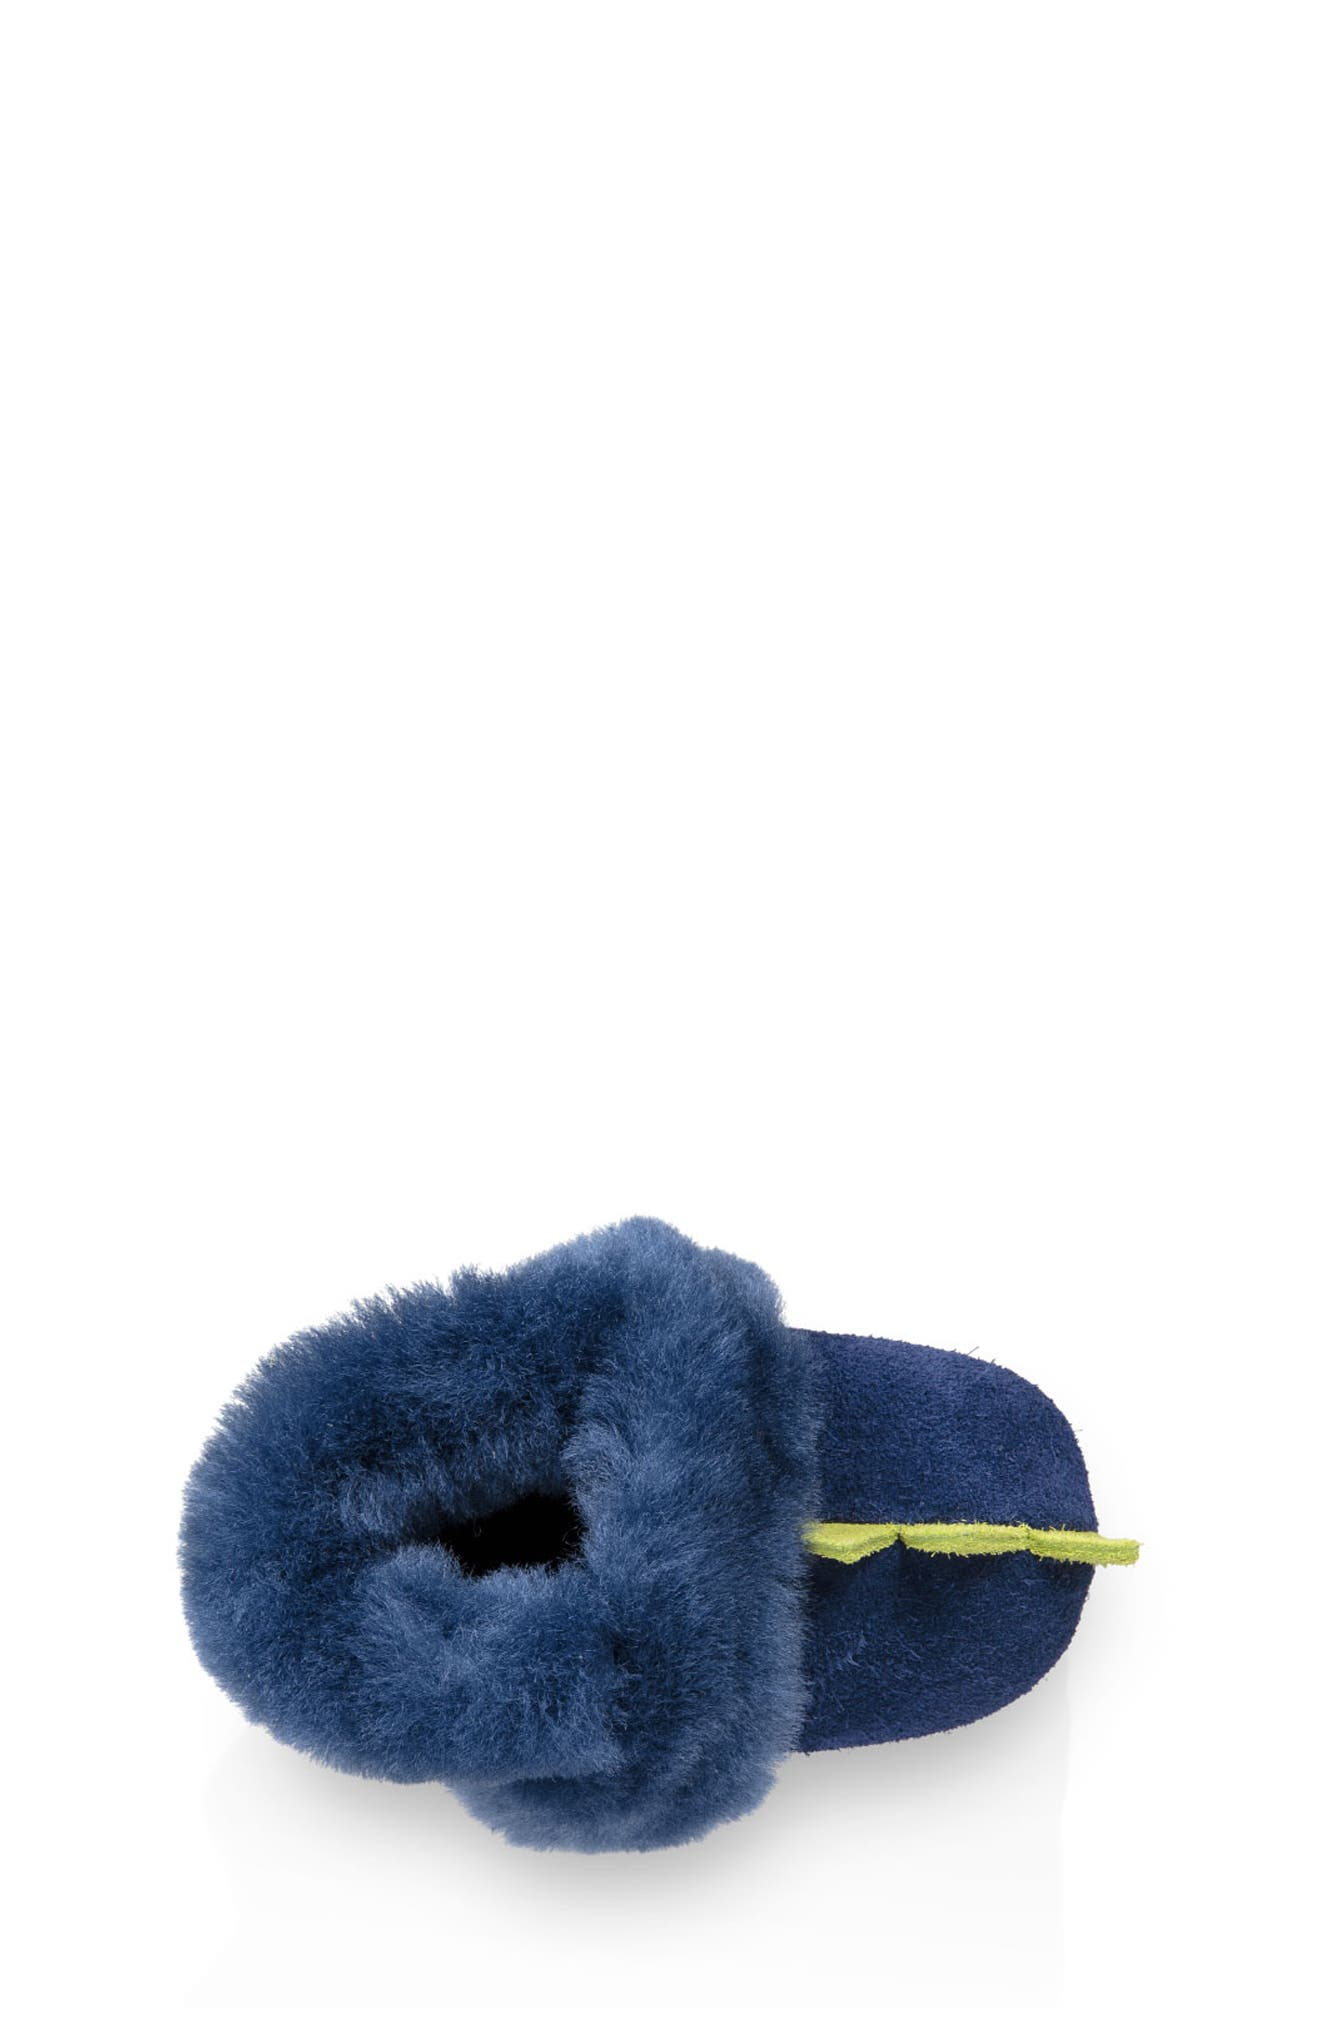 Dydo Solvi Genuine Shearling Cuffed Bootie,                             Alternate thumbnail 4, color,                             NAVY / BRIGHT CHARTREUSE